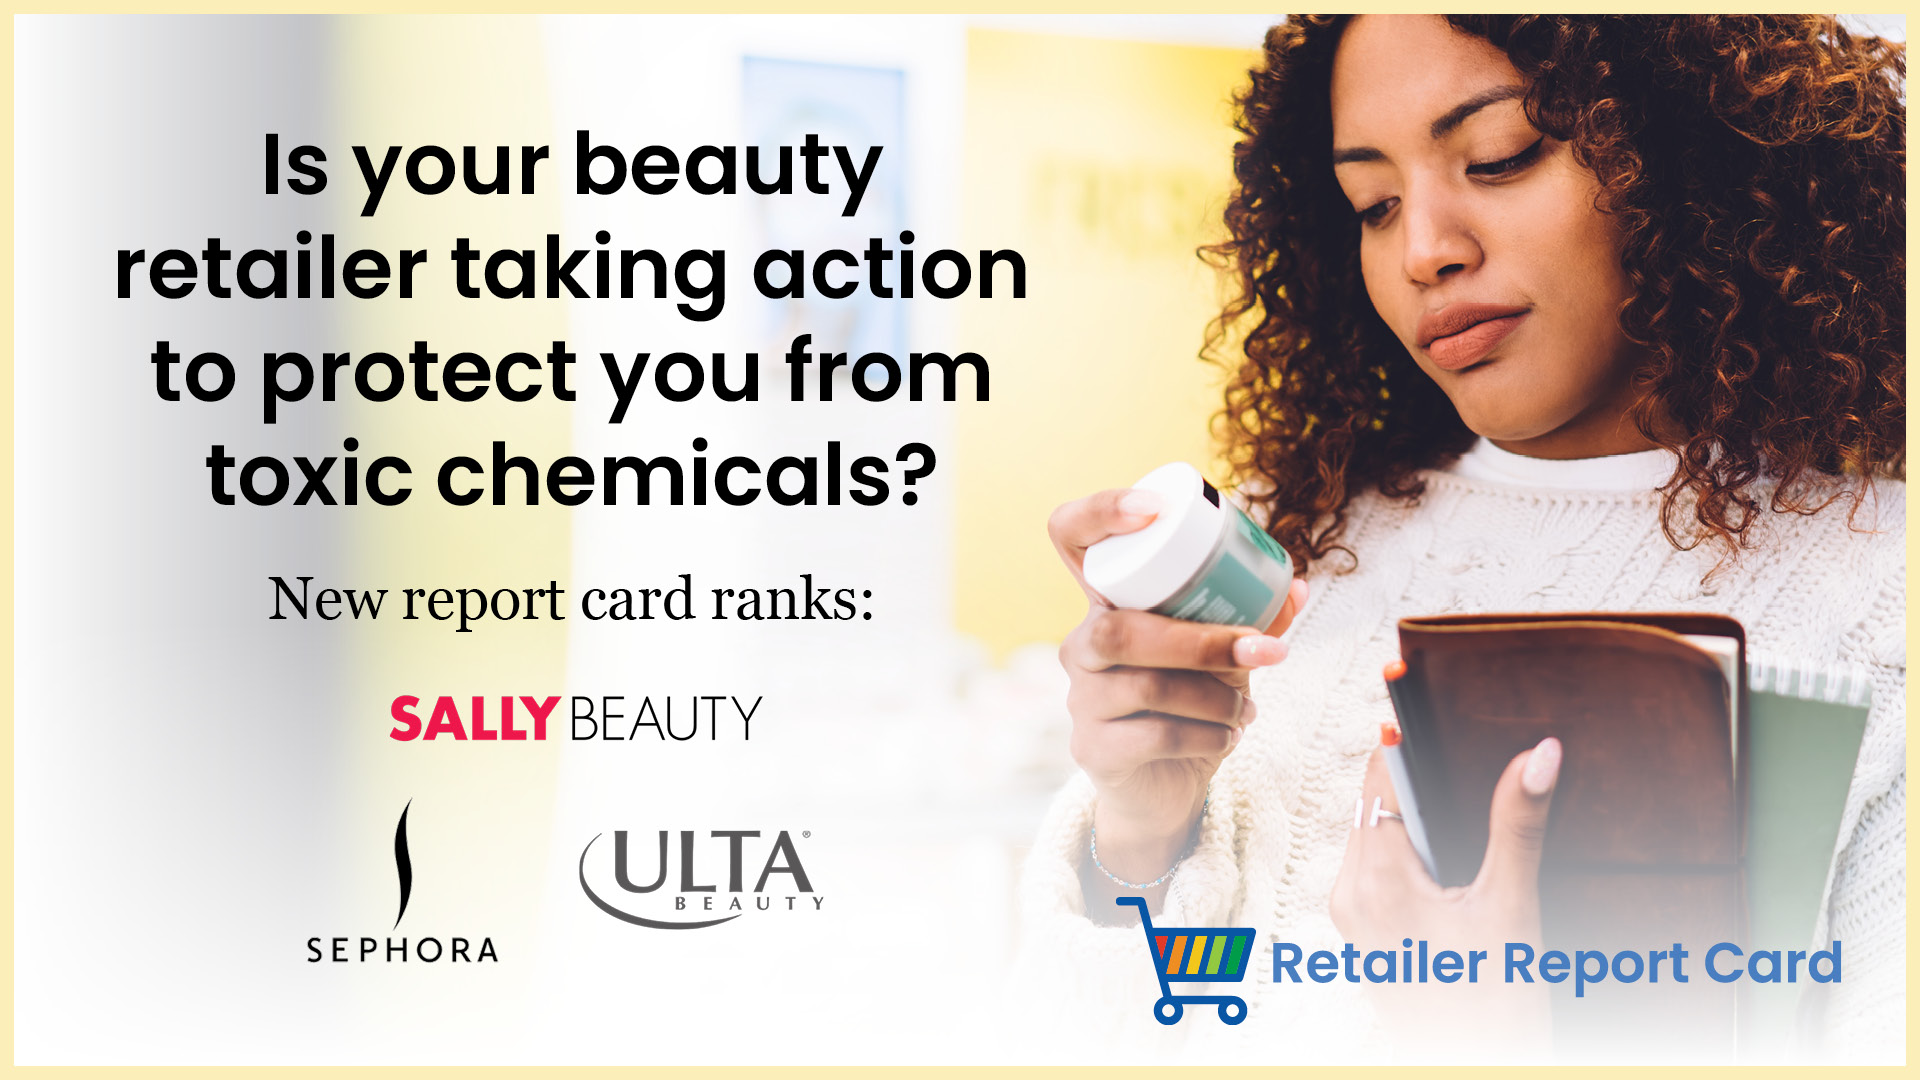 Is your retailer protecting you from toxic chemicals?